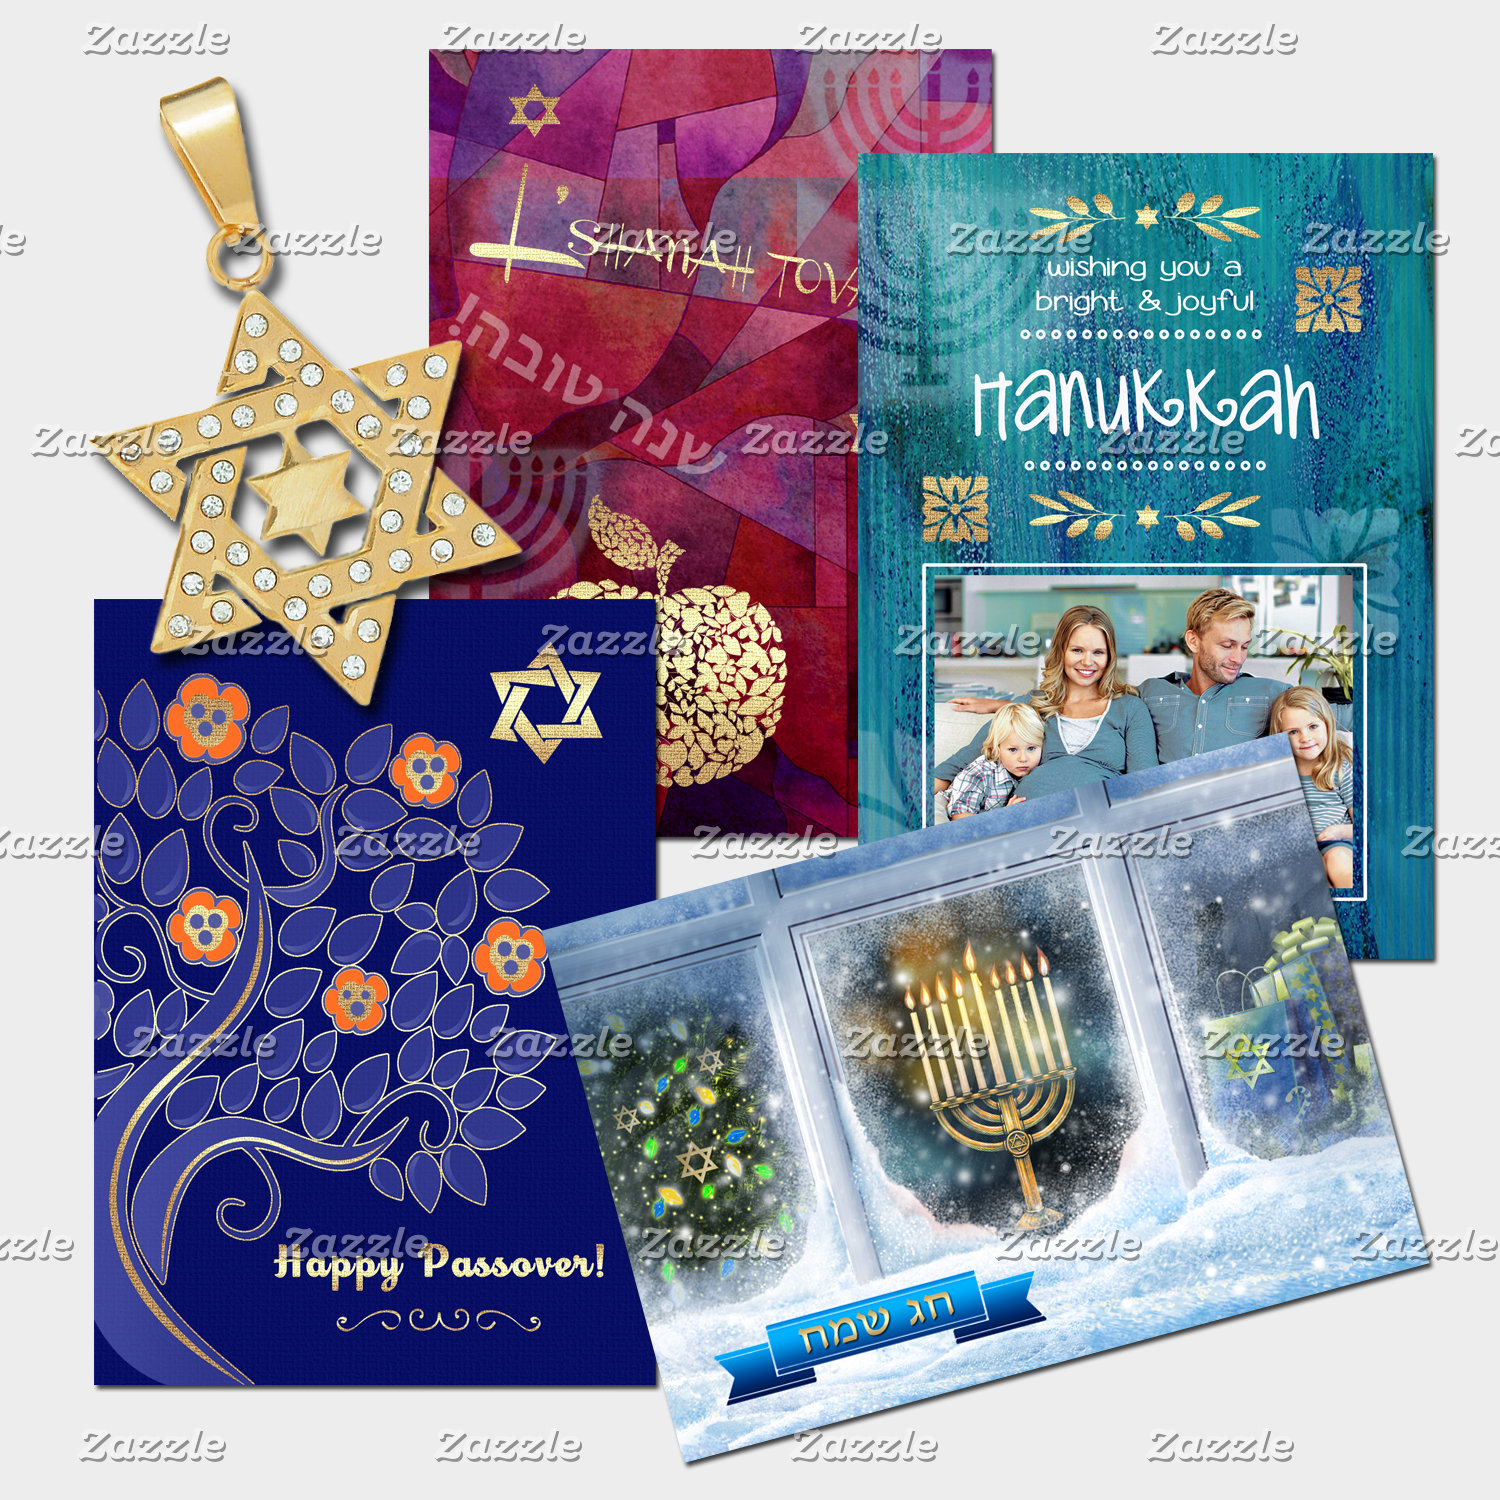 JEWISH HOLIDAYS / EVENTS